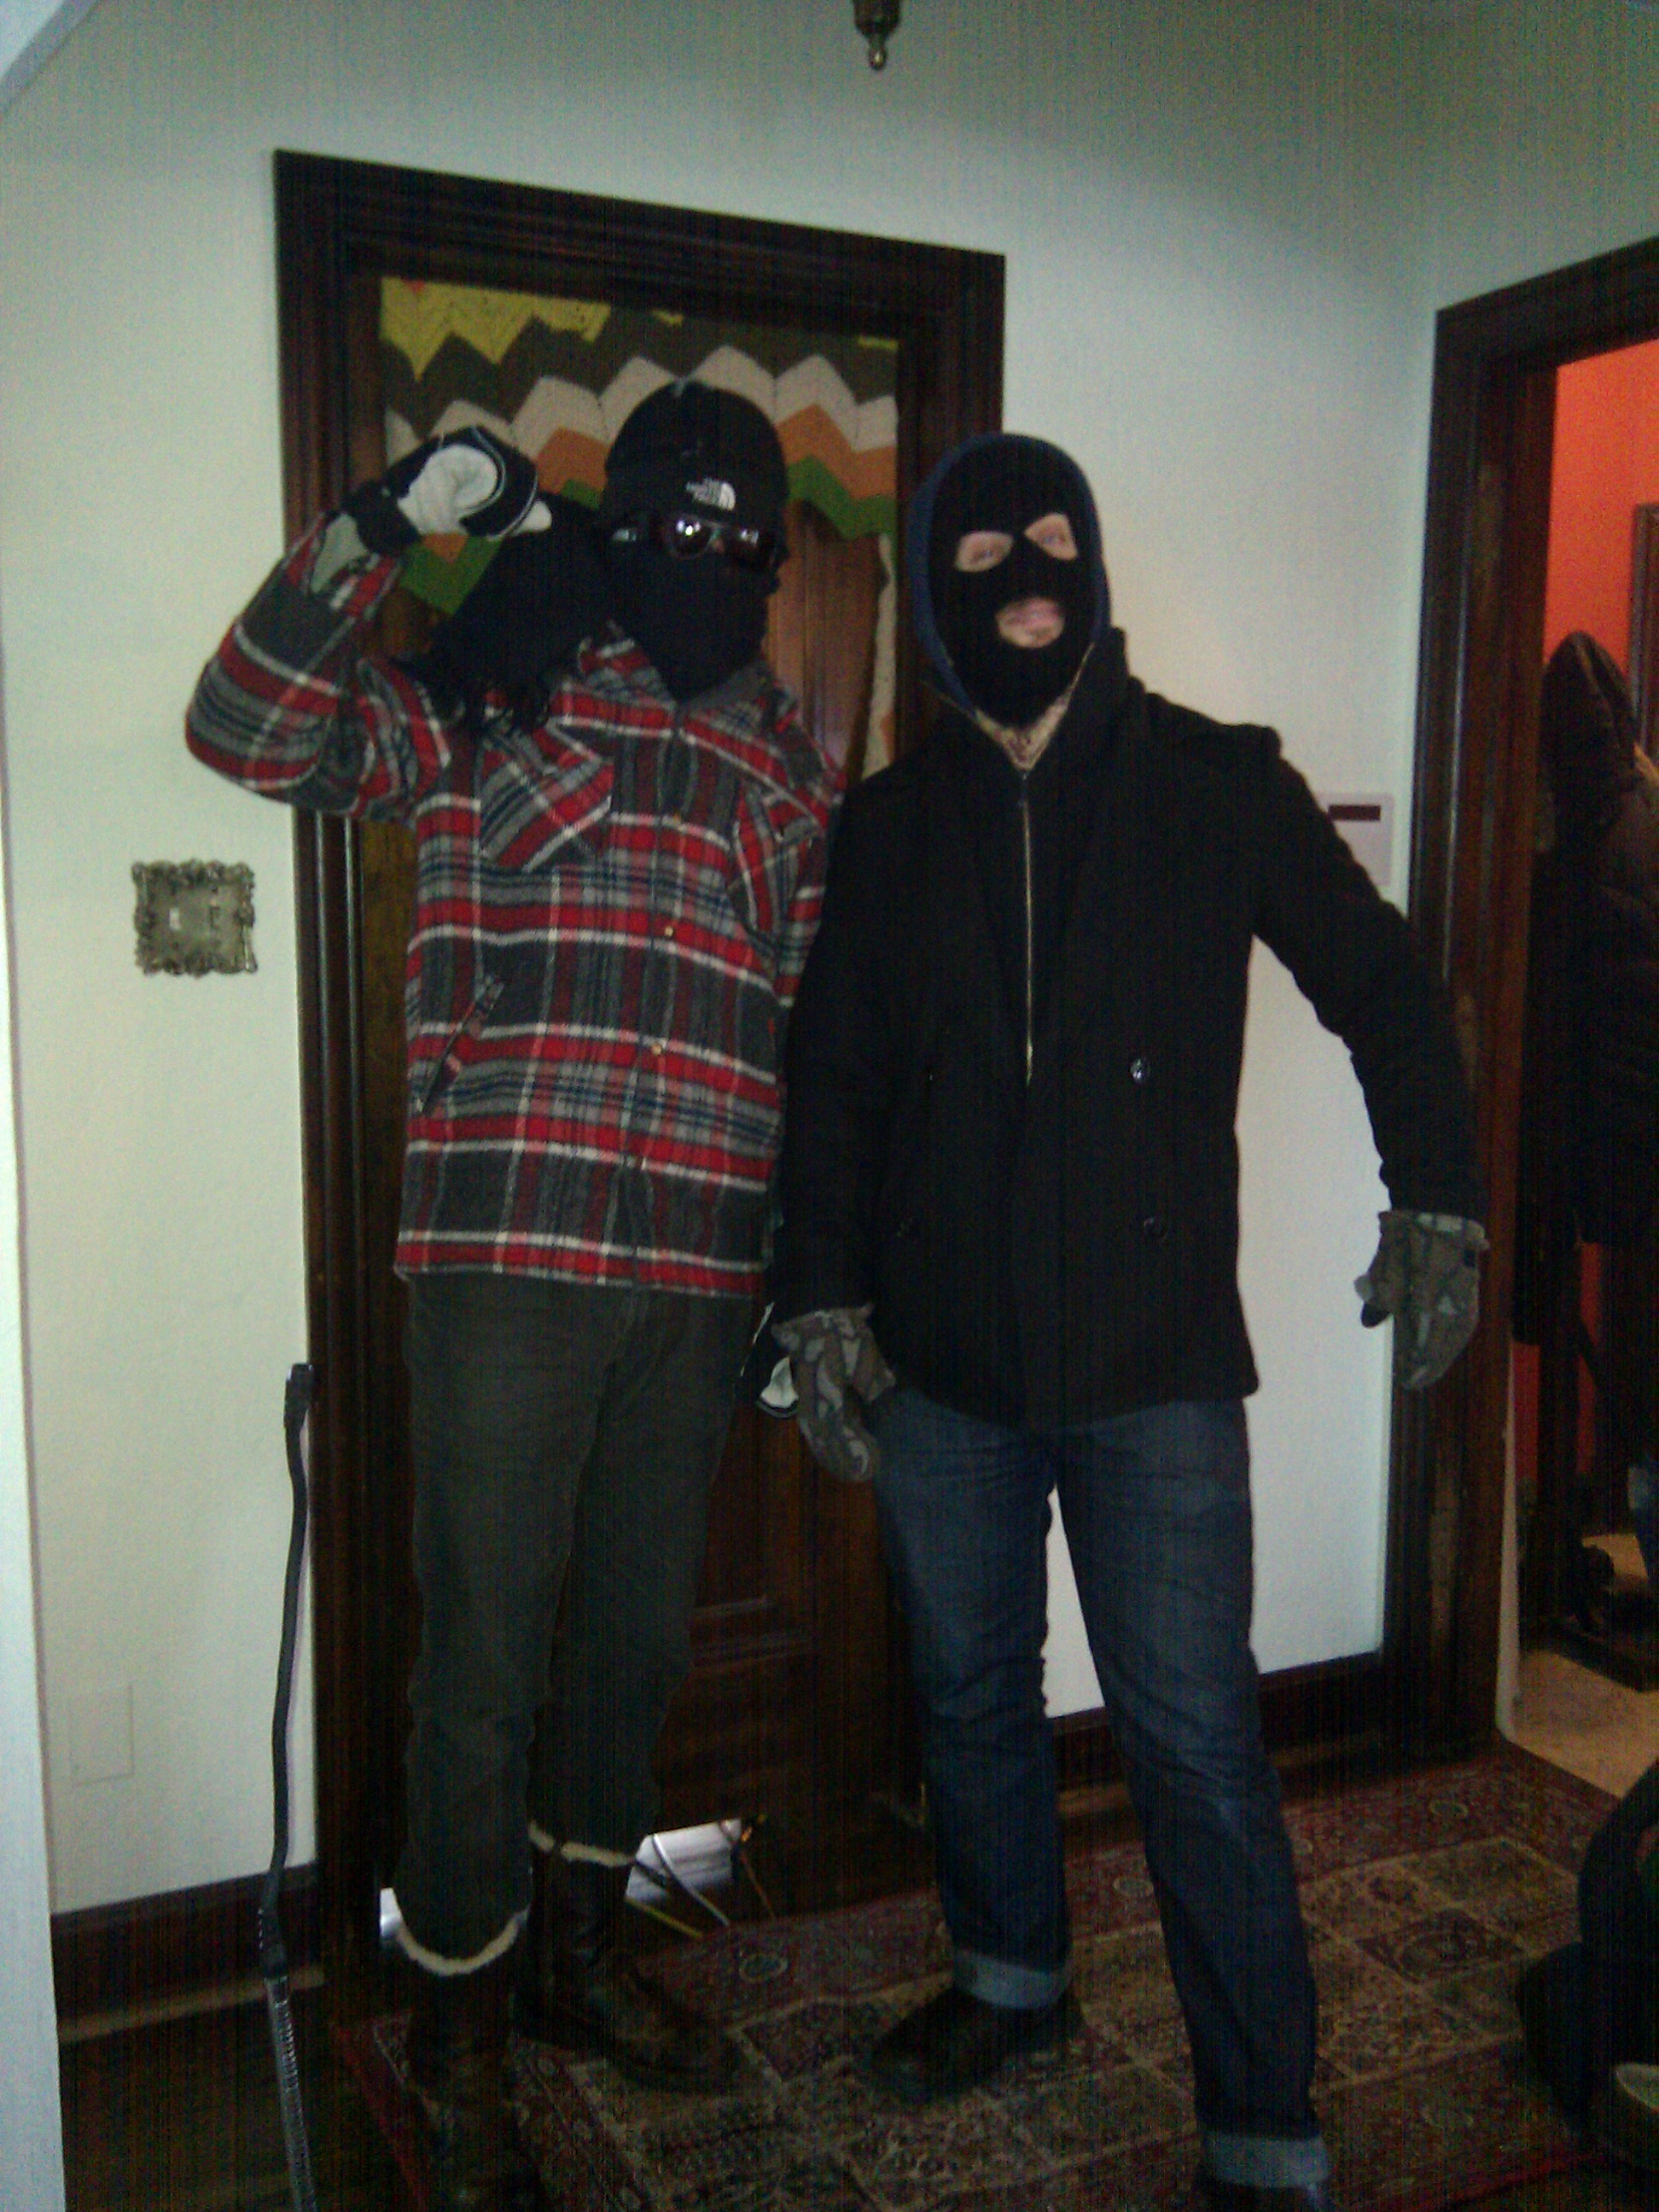 Nick and Eric prepare to rob a bank. Or shovel a friends driveway in -14 degrees...whichever comes first.